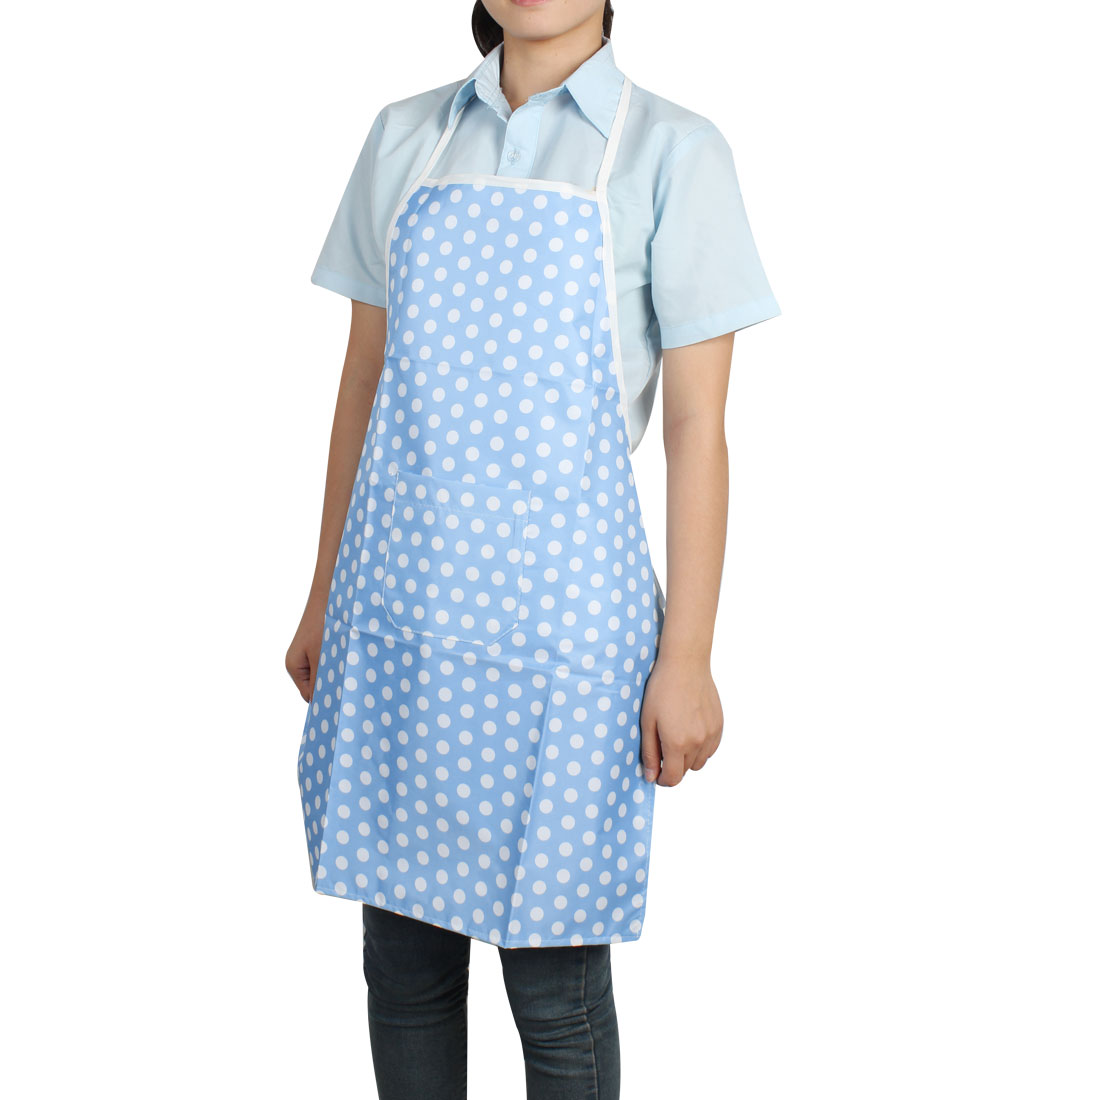 Family Women Sky Blue White Dots Pattern Waterproof Pocket Bib Apron